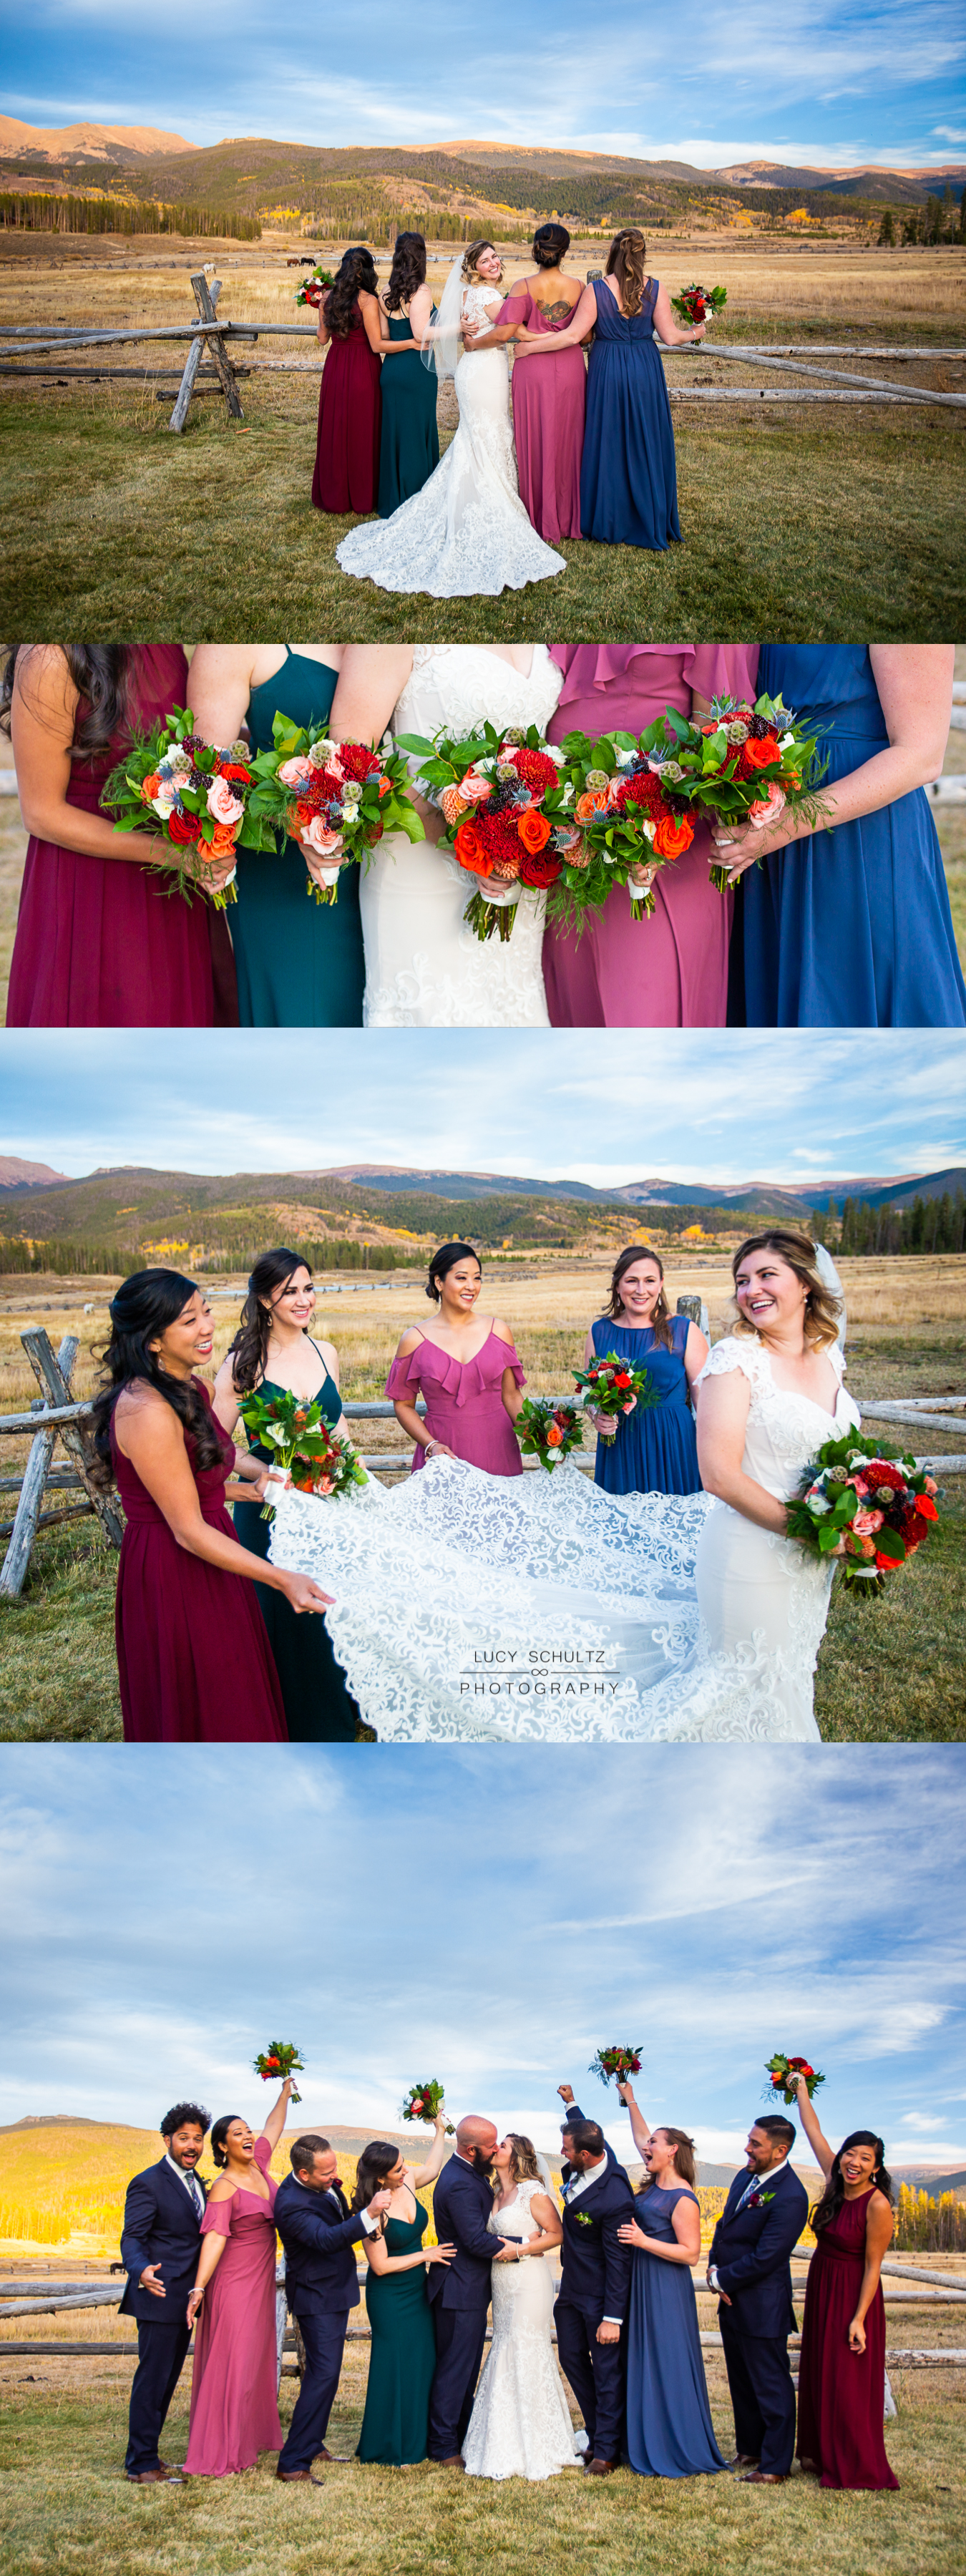 19MismatchedBridesmaidMountainWeddingBridalPartyIdeasColorado